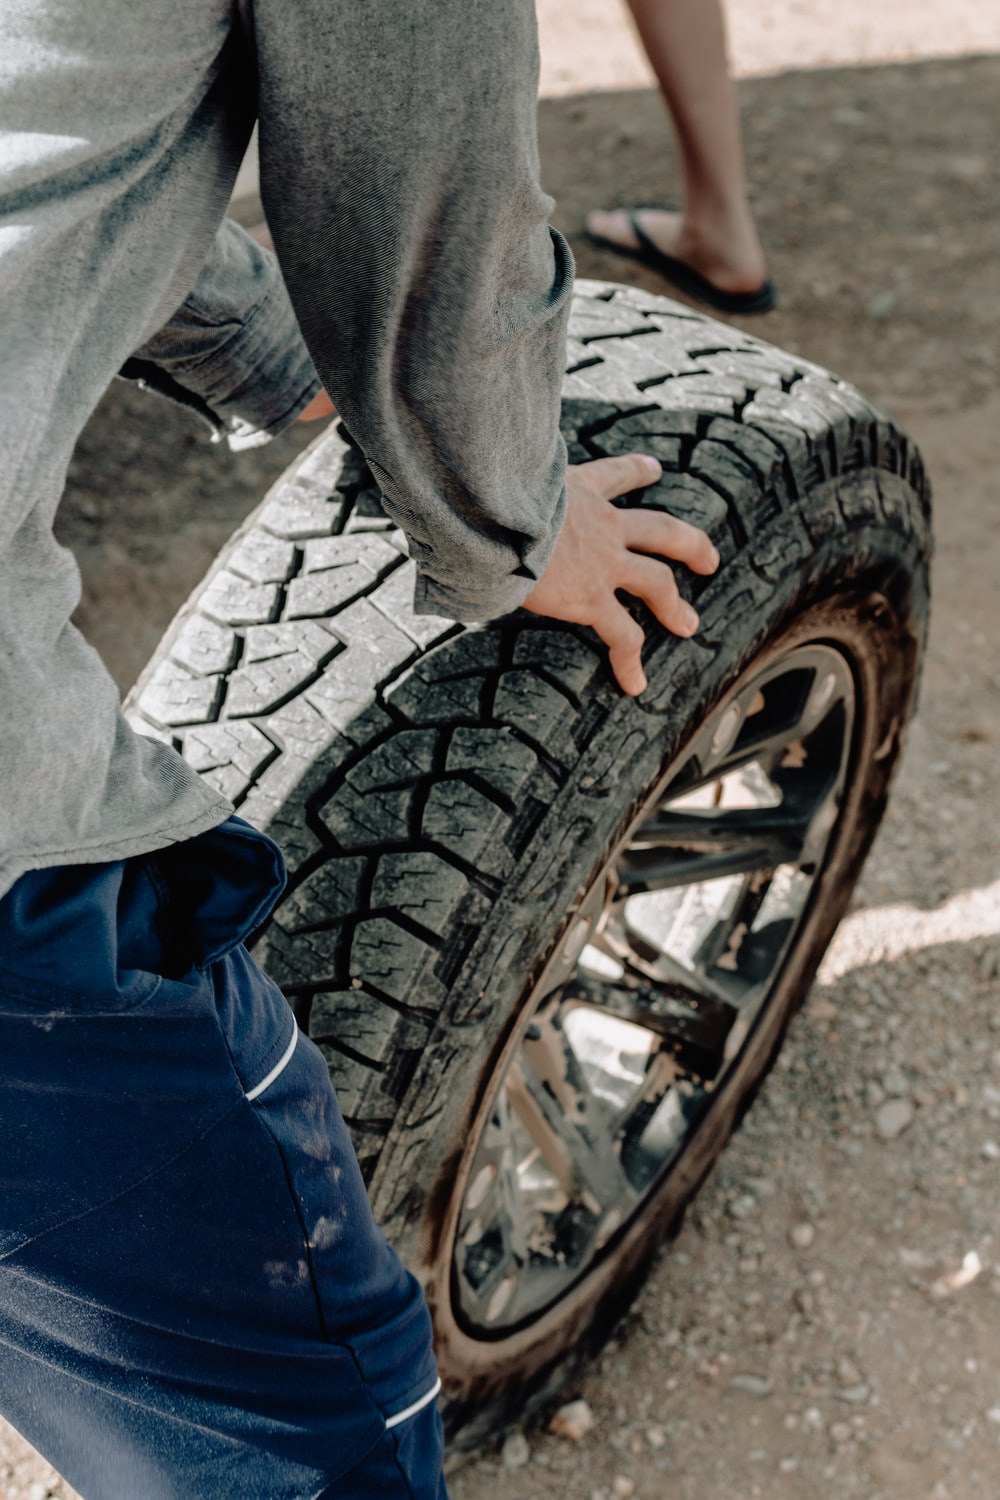 person holding vehicle wheel and rim